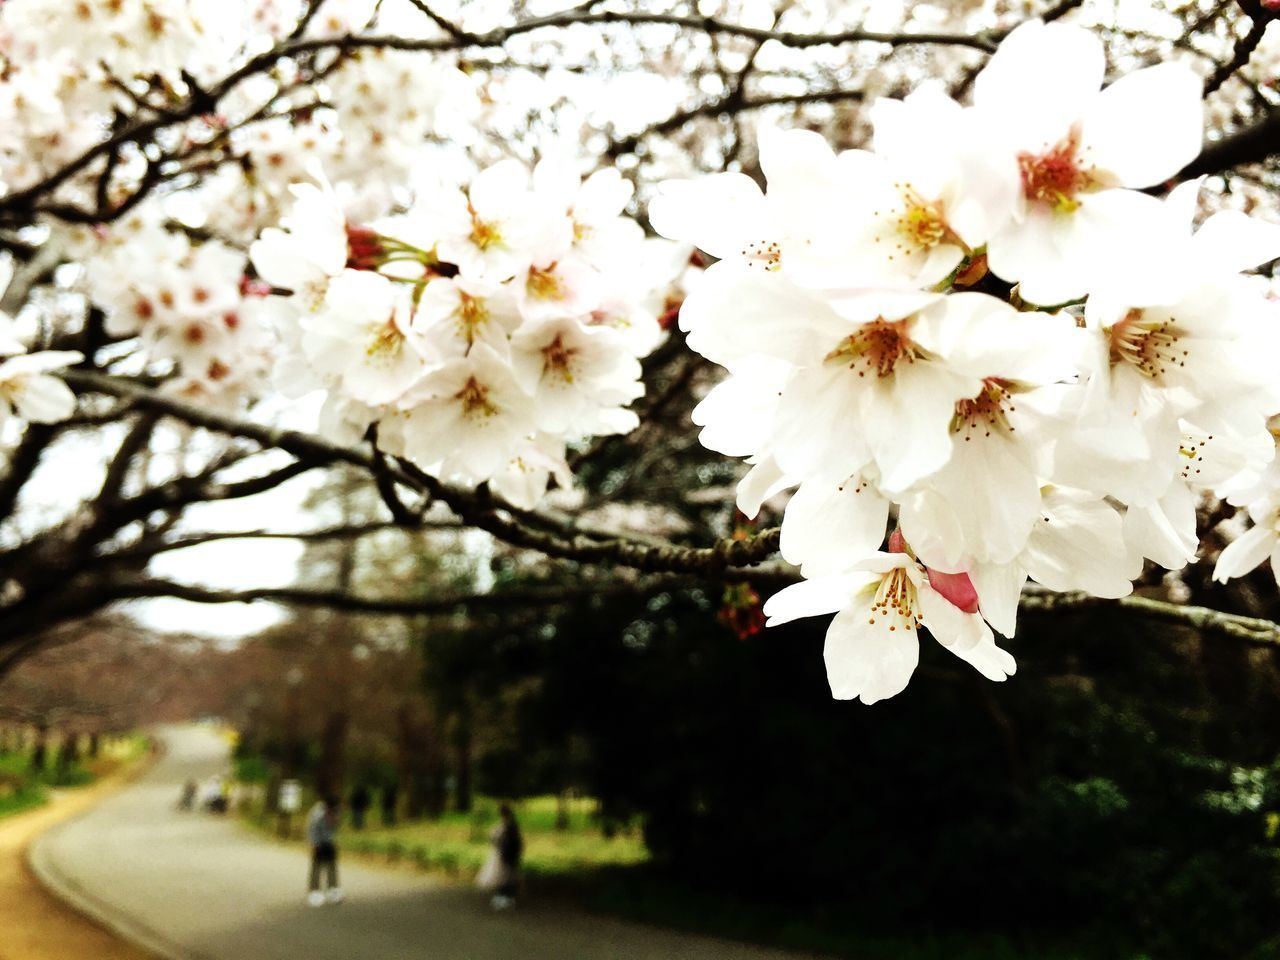 flower, tree, cherry blossom, freshness, cherry tree, branch, fragility, growth, blossom, white color, petal, beauty in nature, nature, focus on foreground, blooming, in bloom, springtime, fruit tree, park - man made space, day